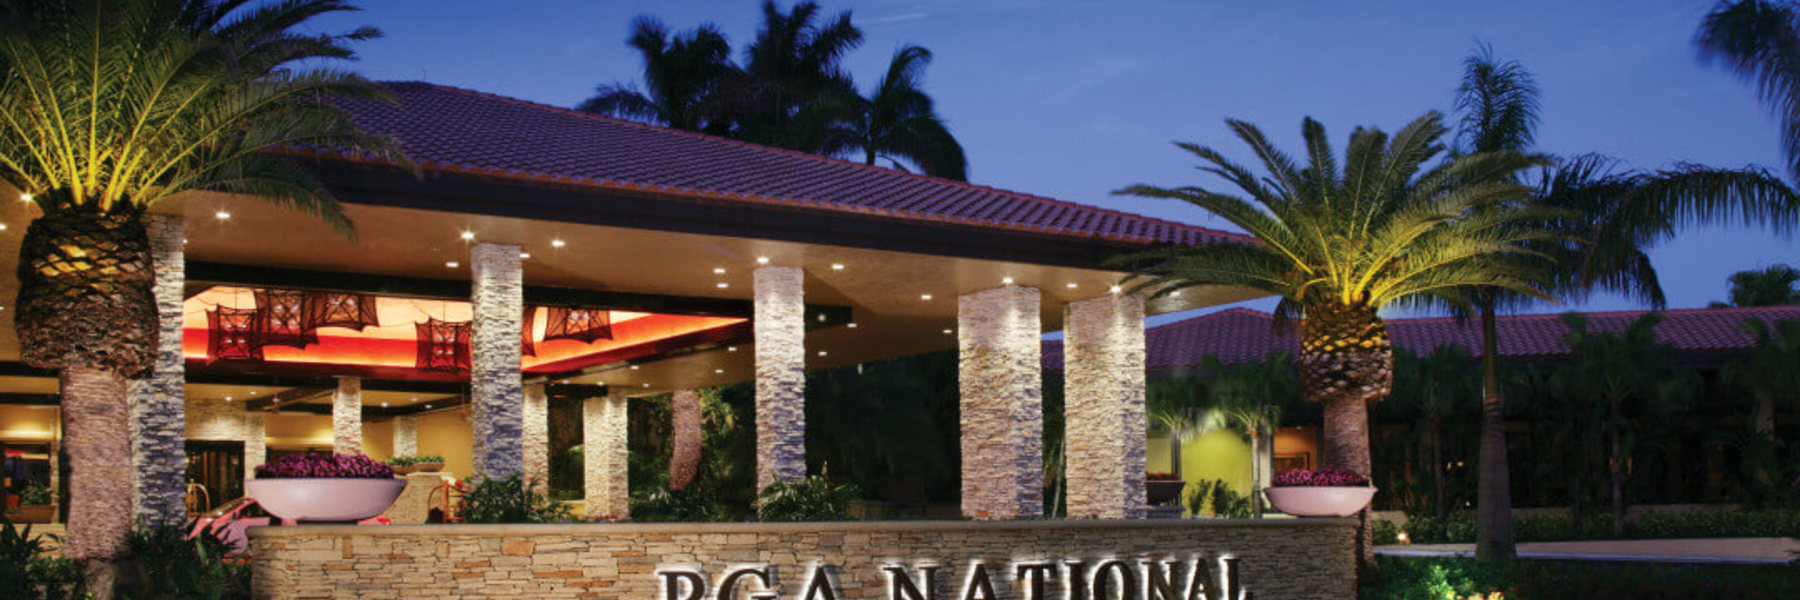 Golf Vacation Package - PGA National Fall/Winter UNLIMITED Golf Getaway starting at $316 per day!